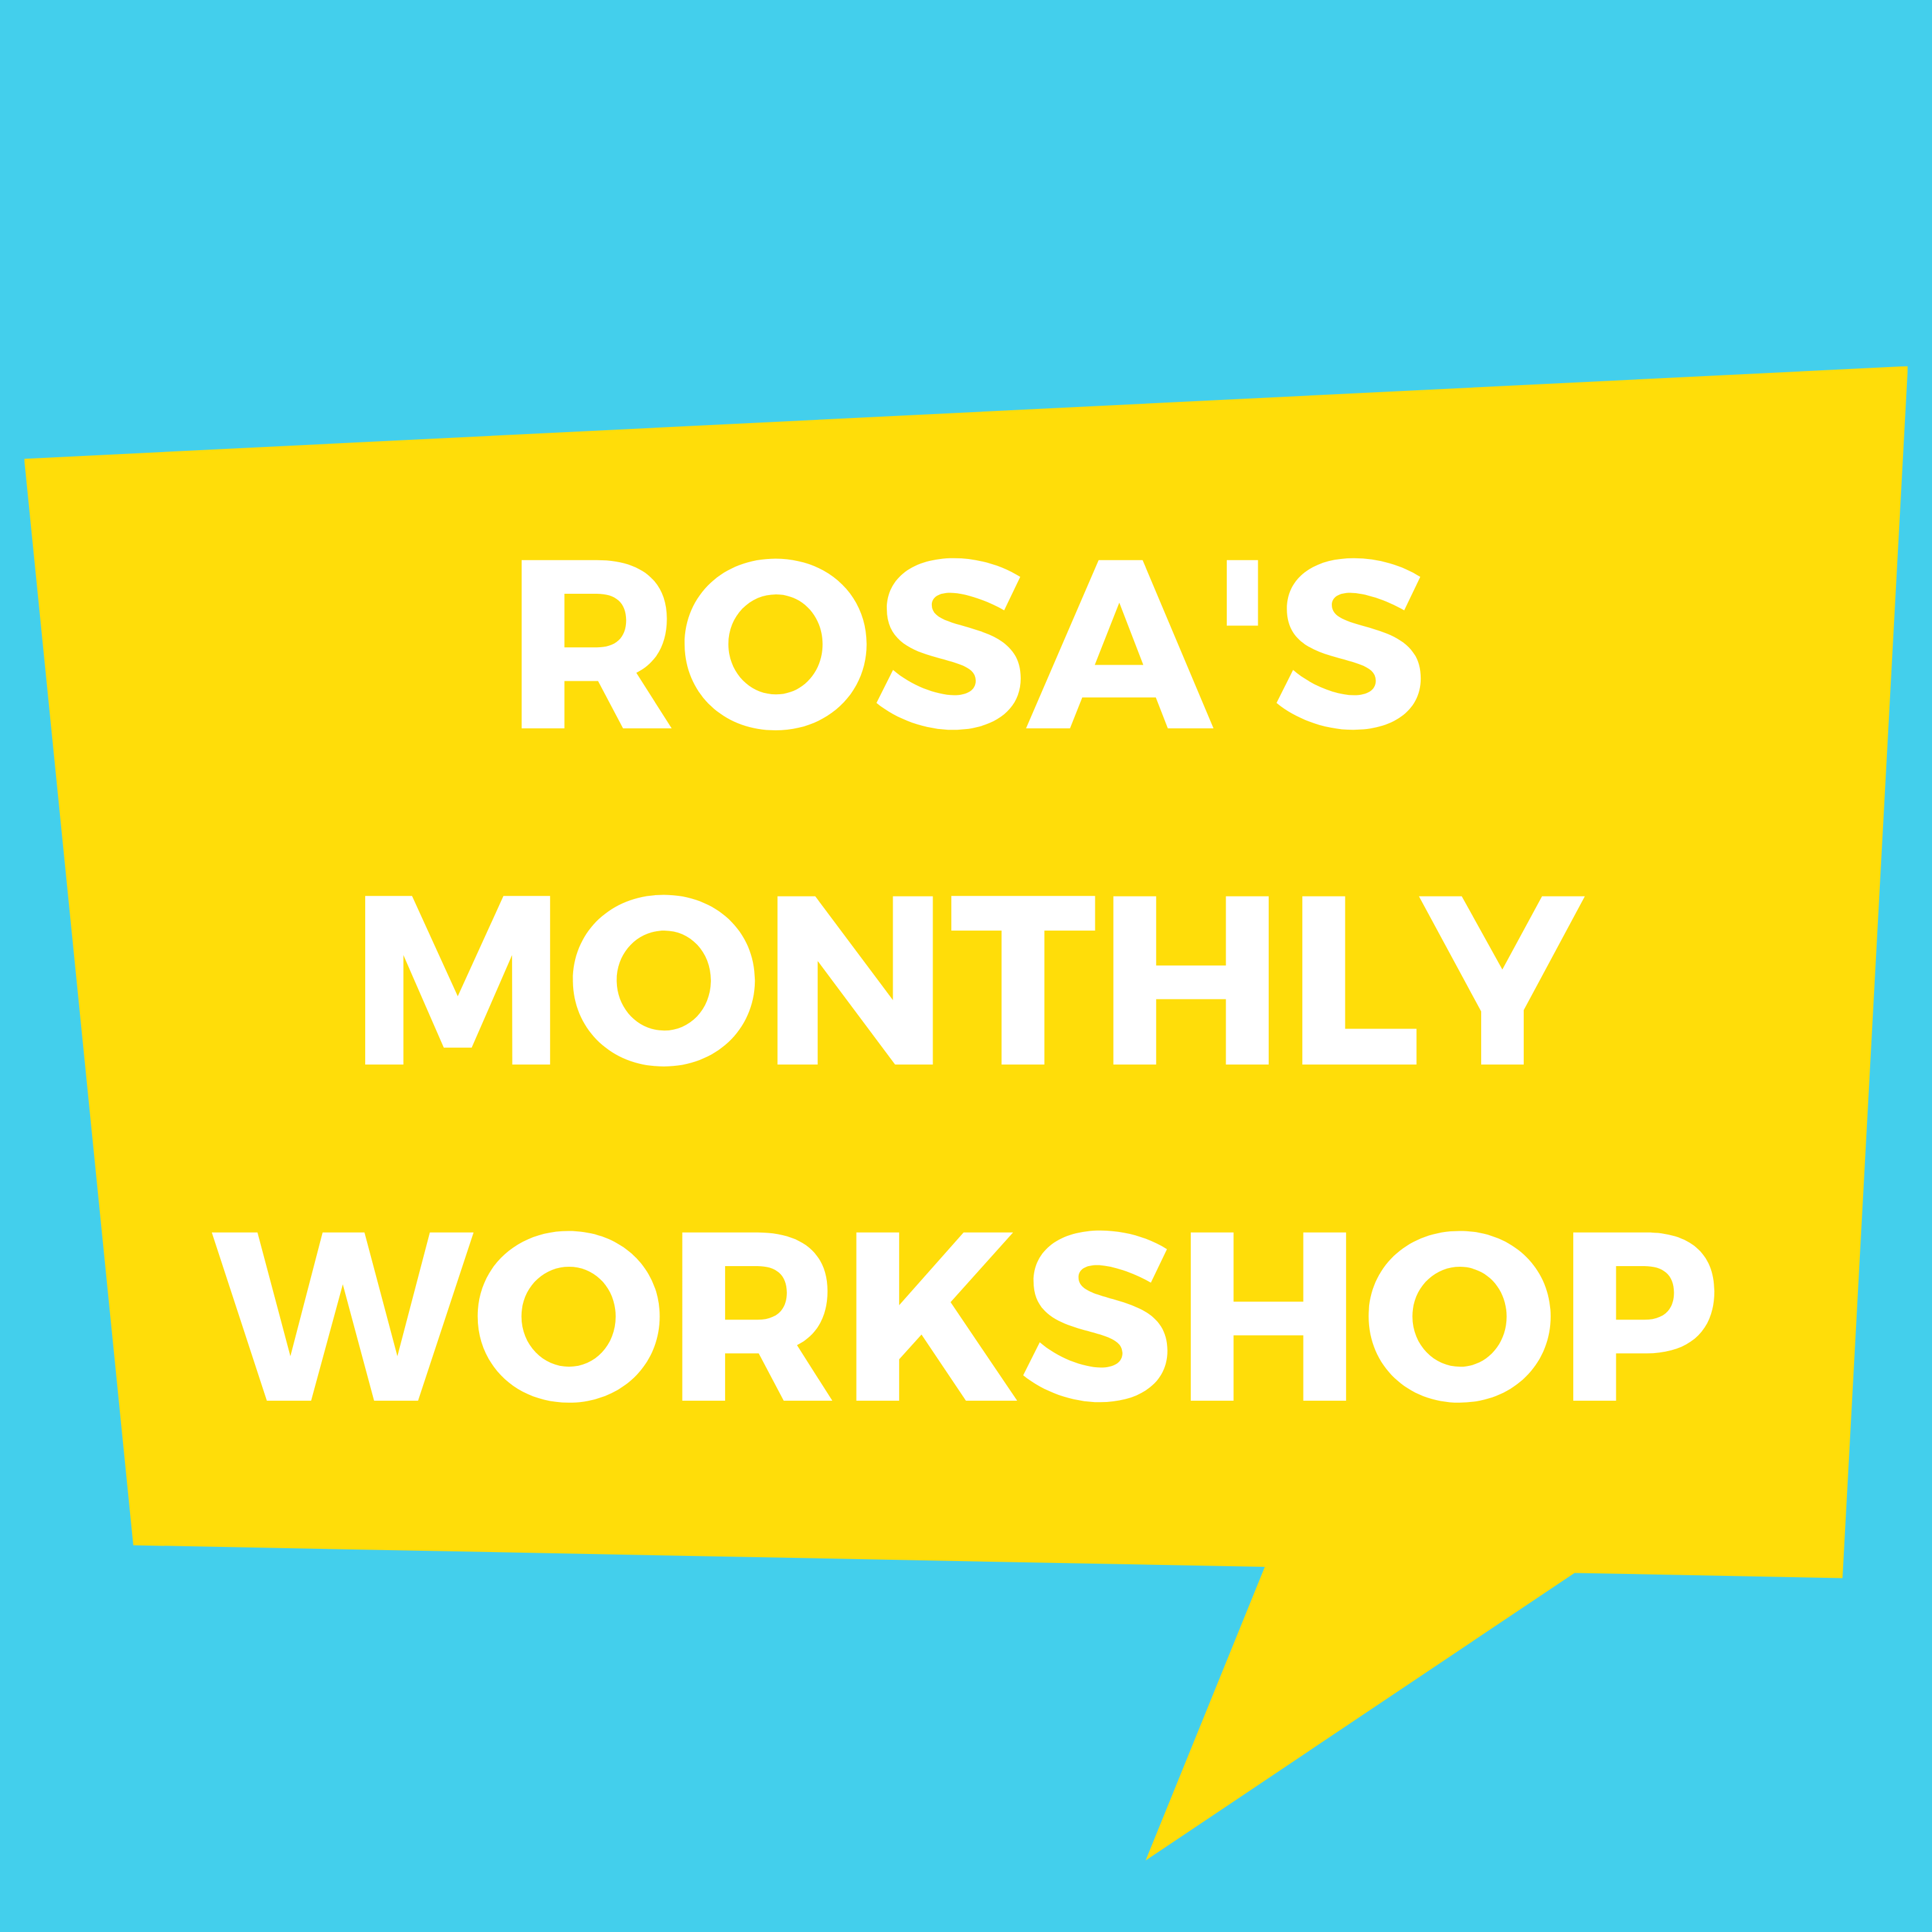 Rosa's monthly workshop